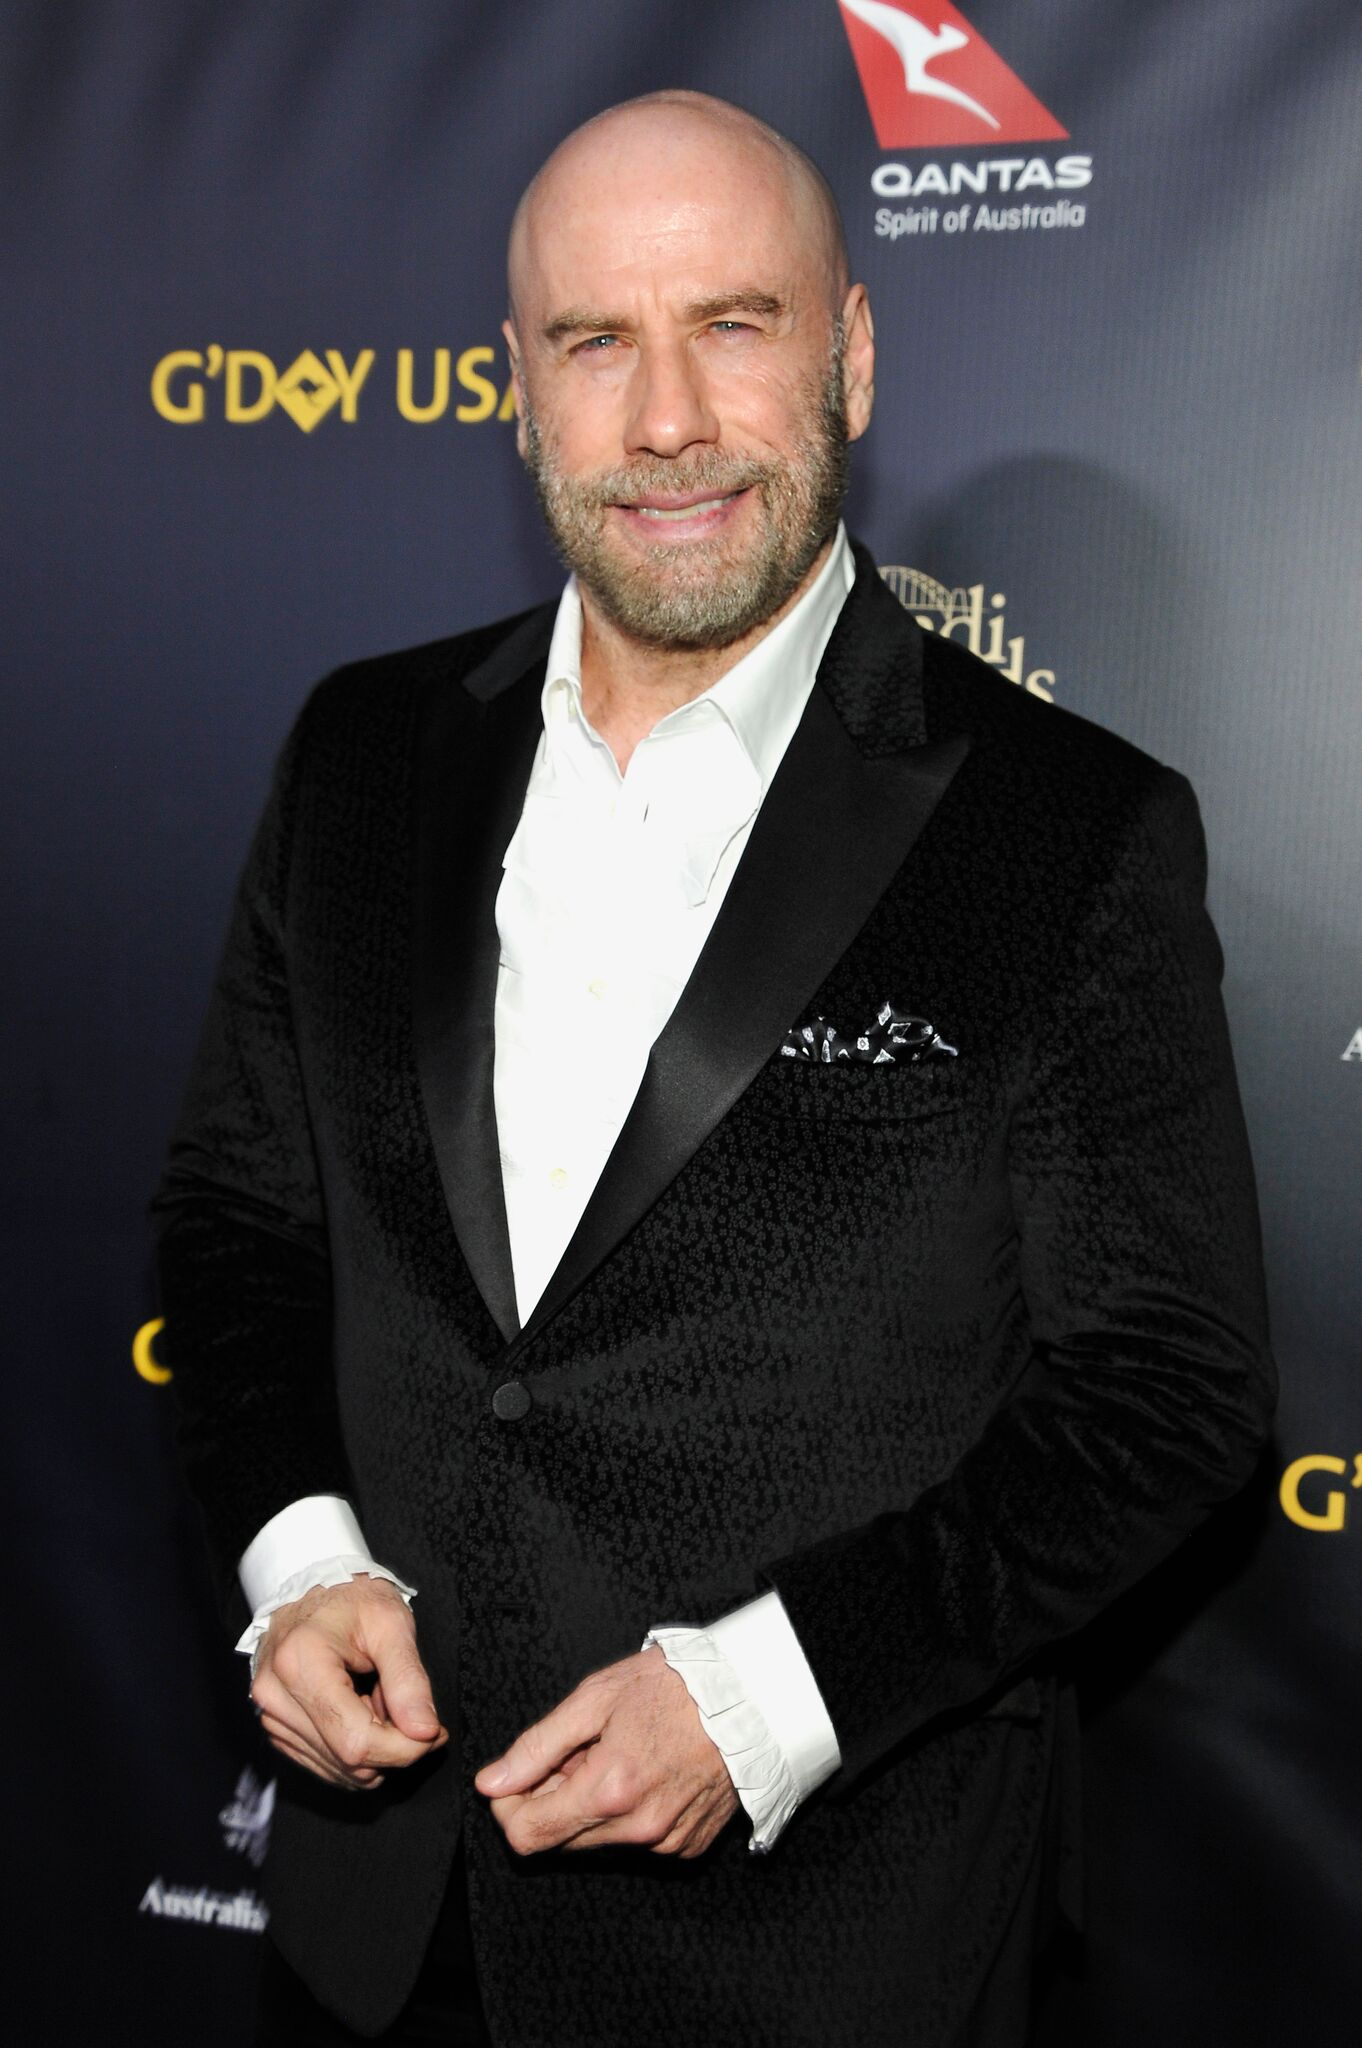 John Travolta à 3LABS le 26 janvier 2019 à Culver City, Californie | Photo: Getty Images